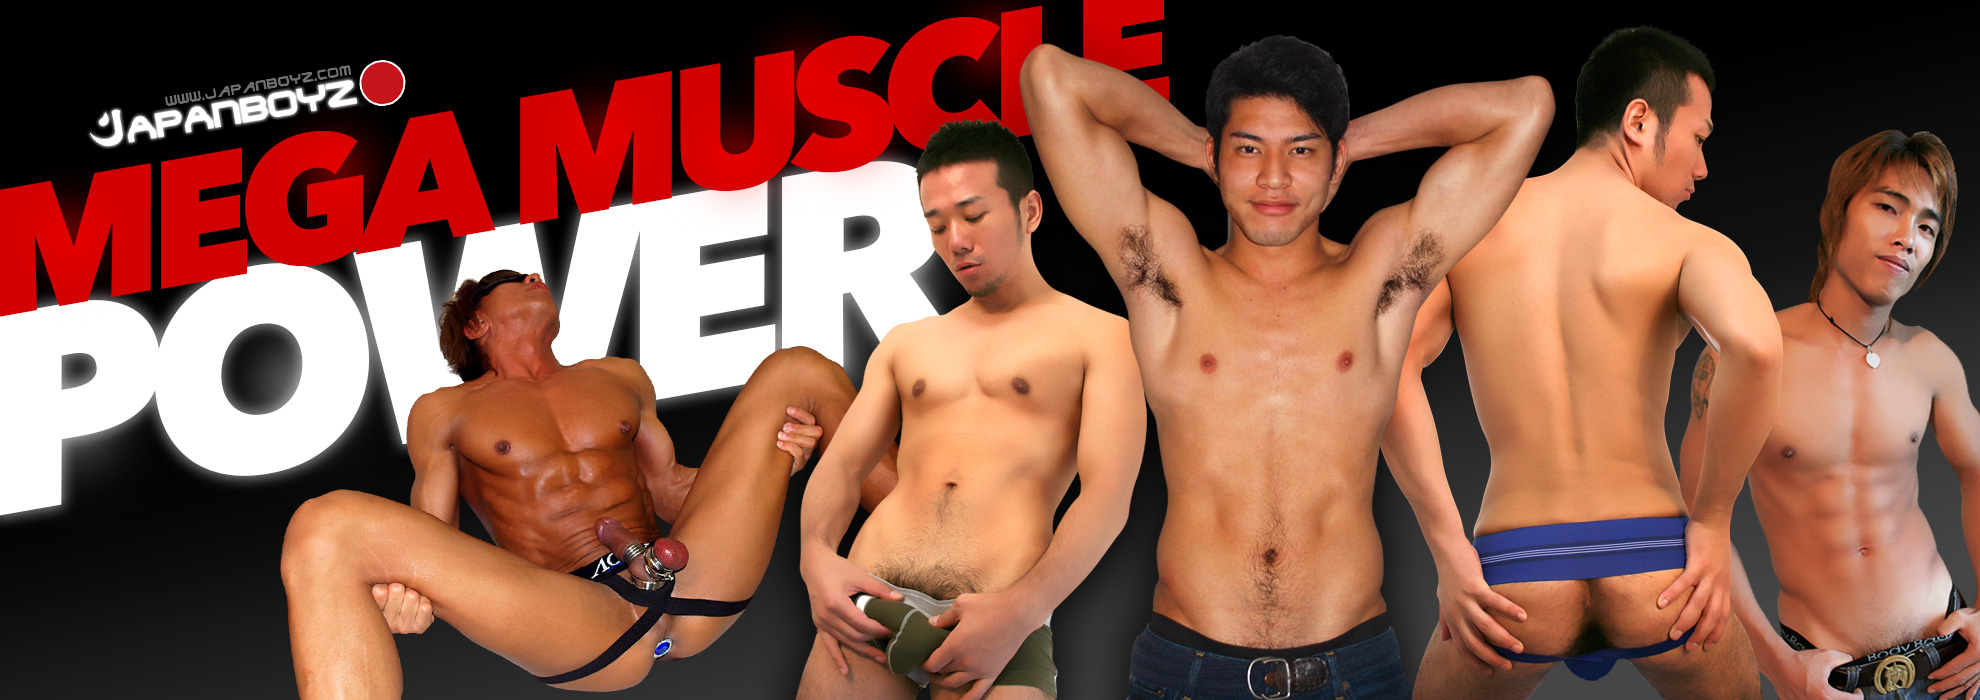 Mega Muscle Power